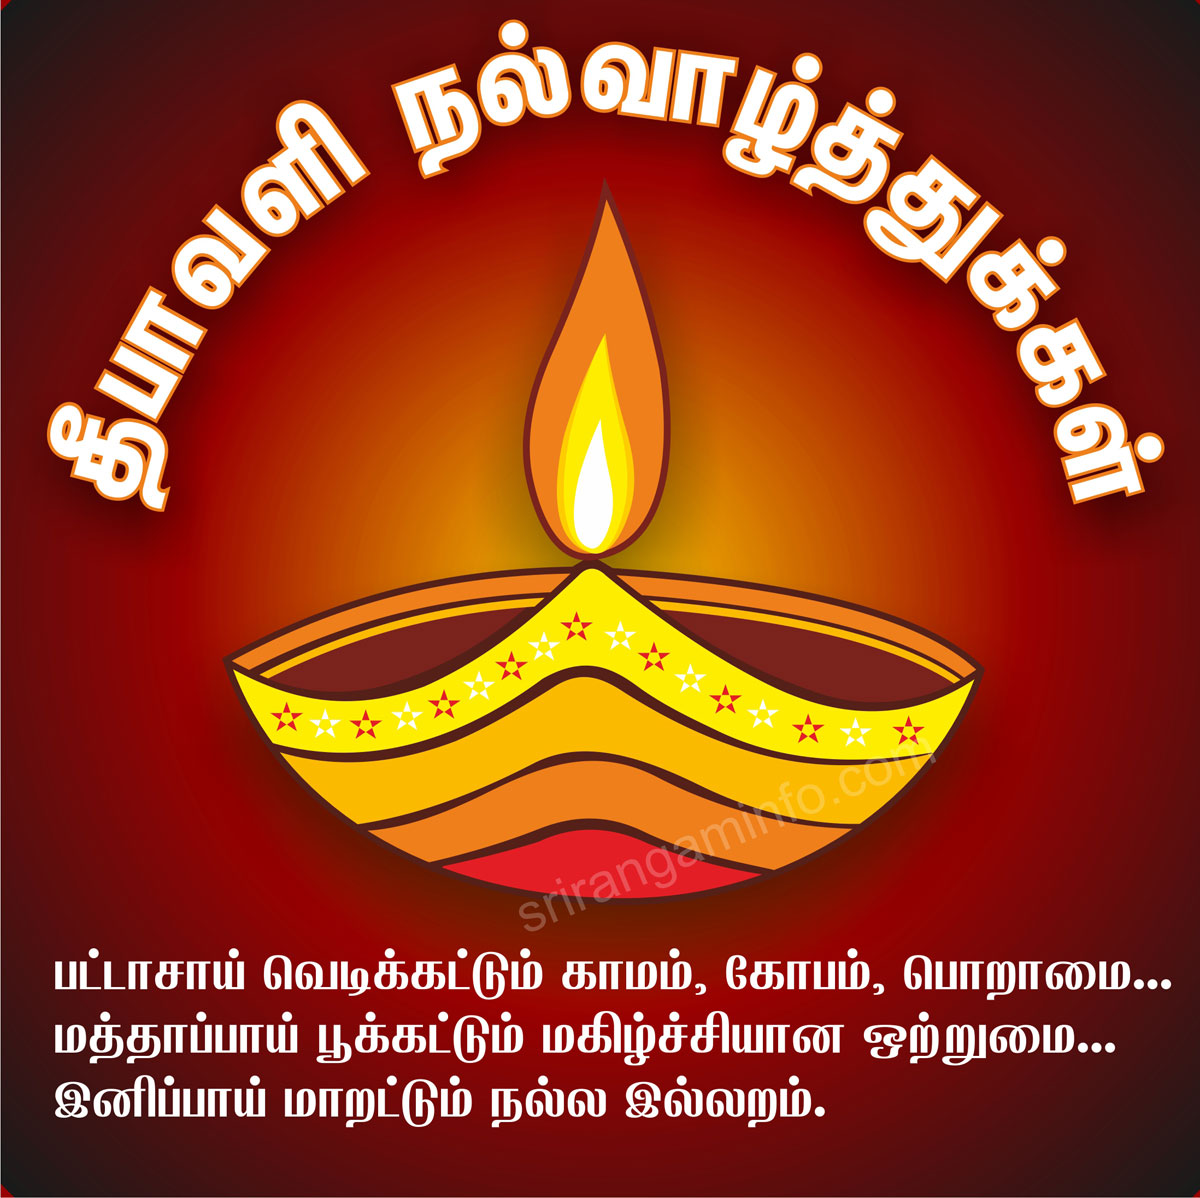 Deepavali greetings in tamil 2017 tamil deepavali greetings 2017 with wishes m4hsunfo